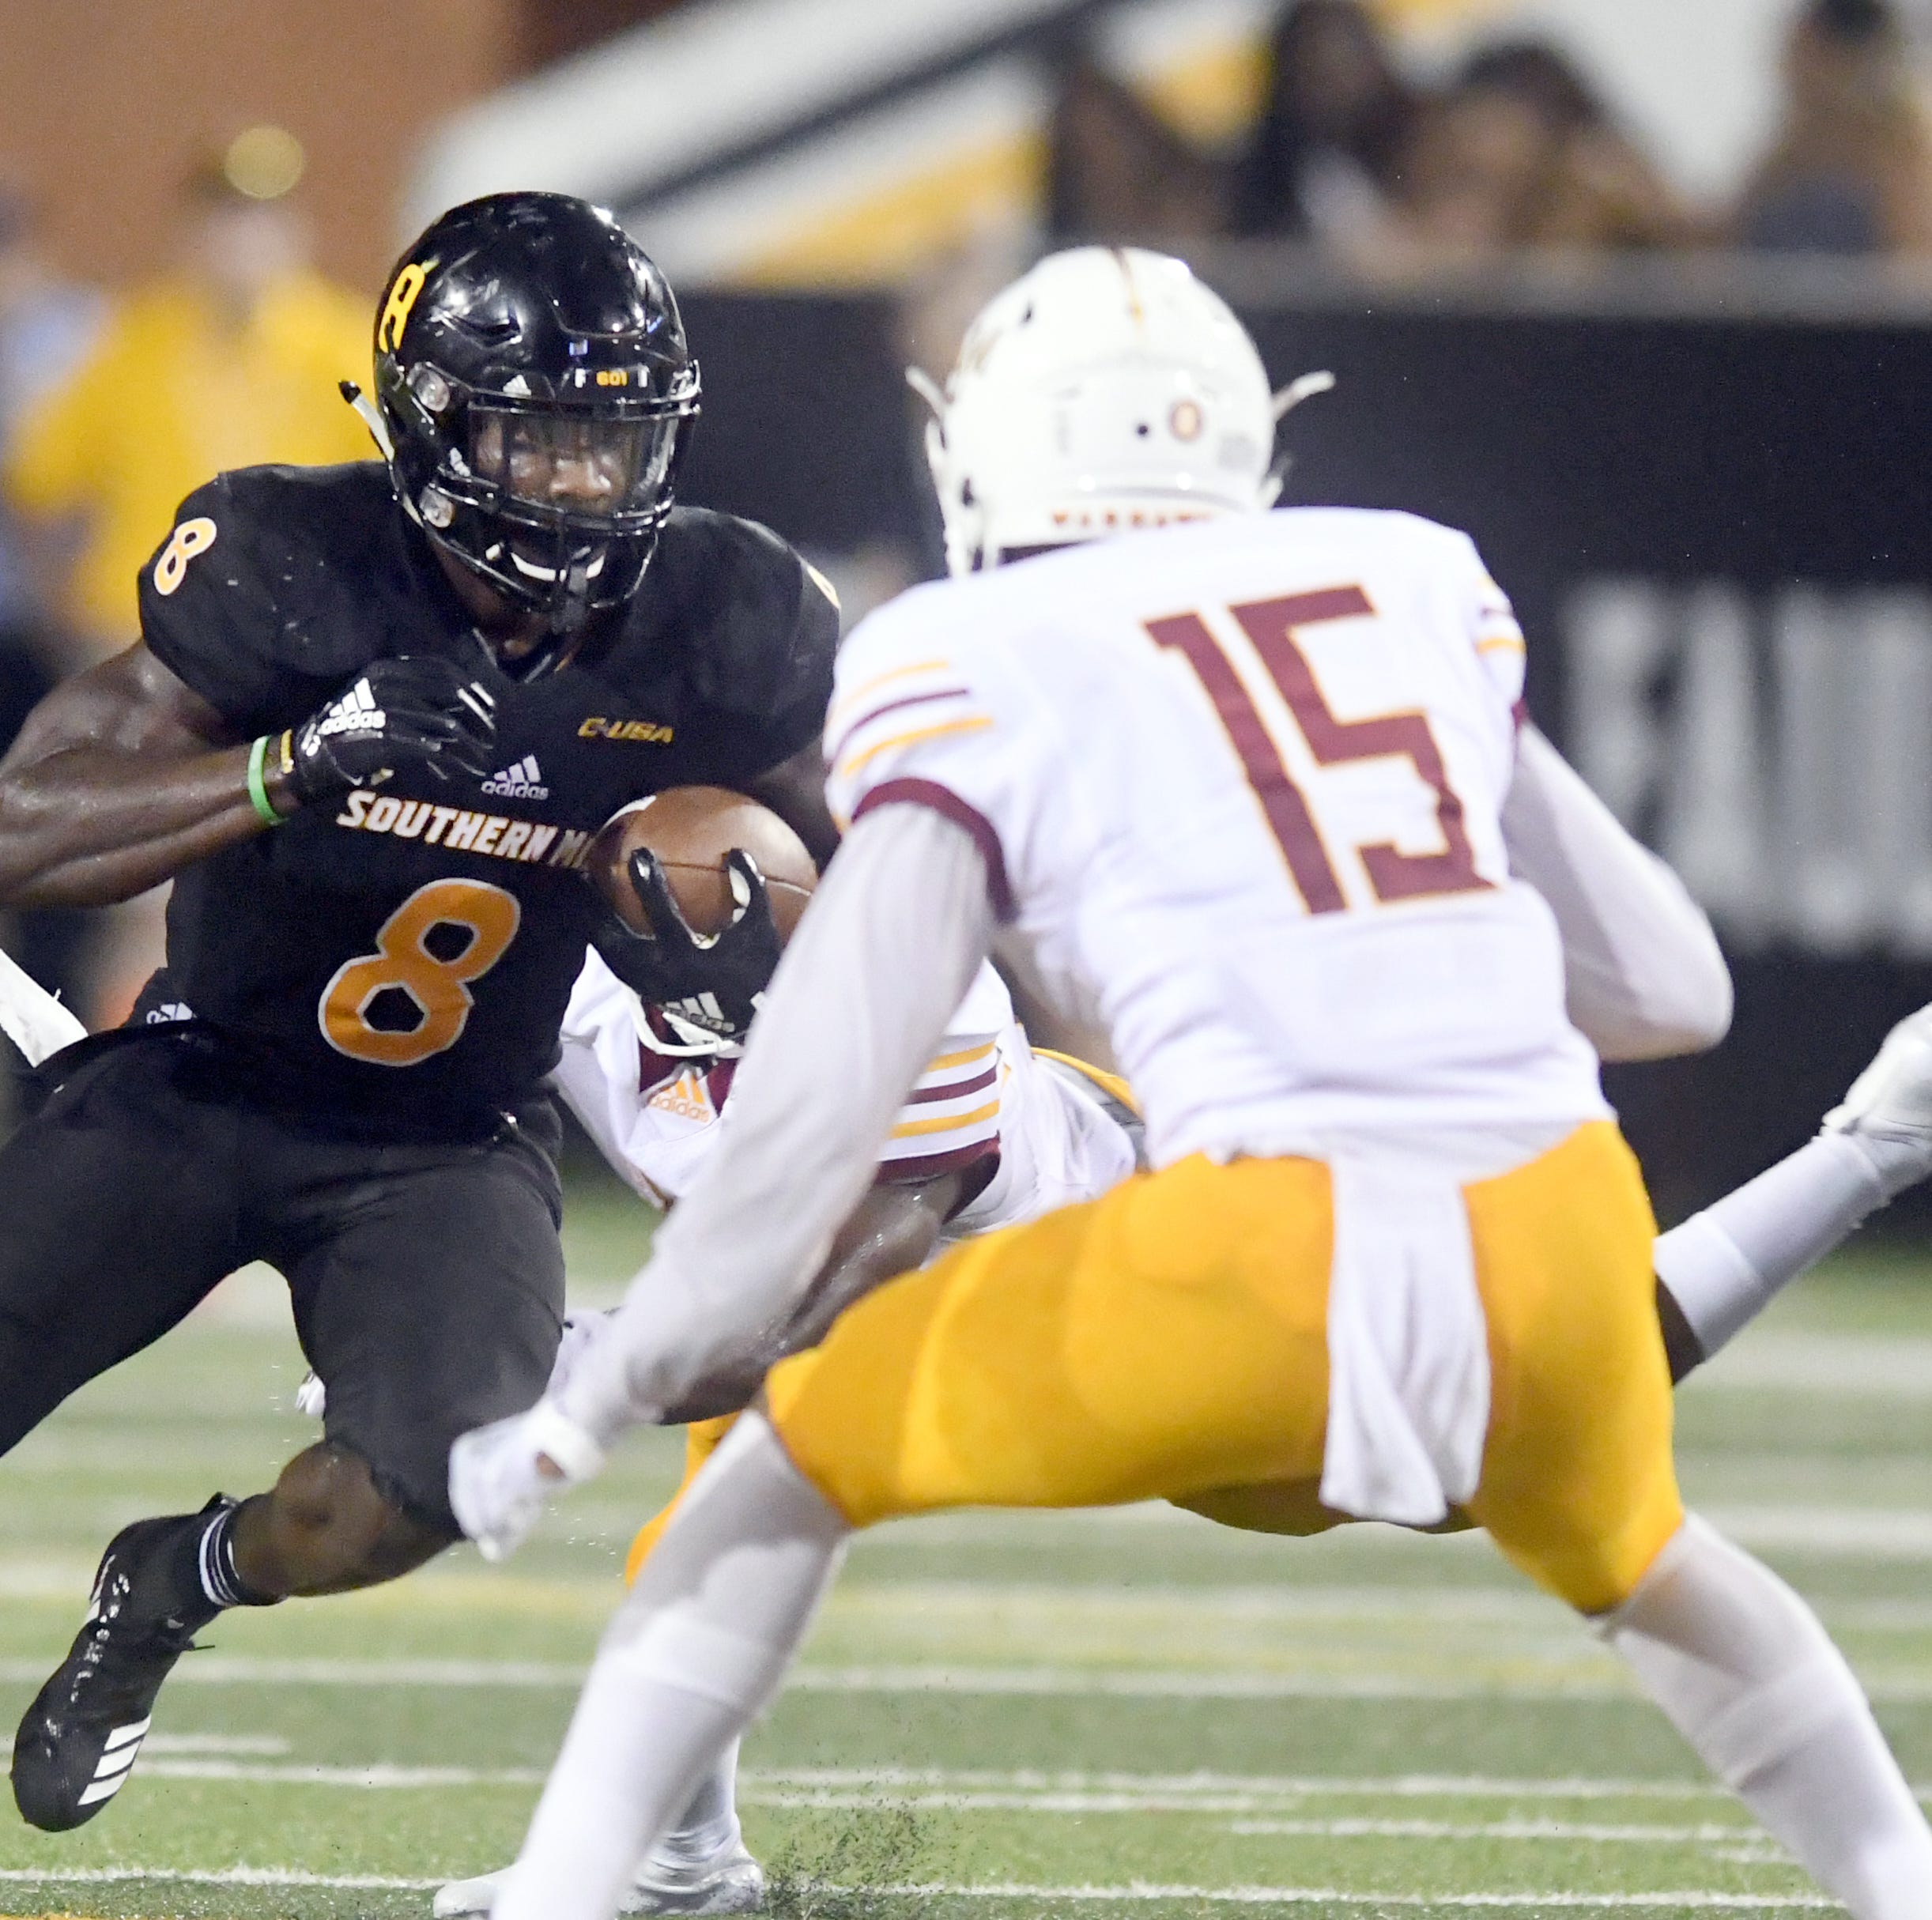 Southern Miss vs. Rice should be a matchup of weaknesses ready to emerge as strengths